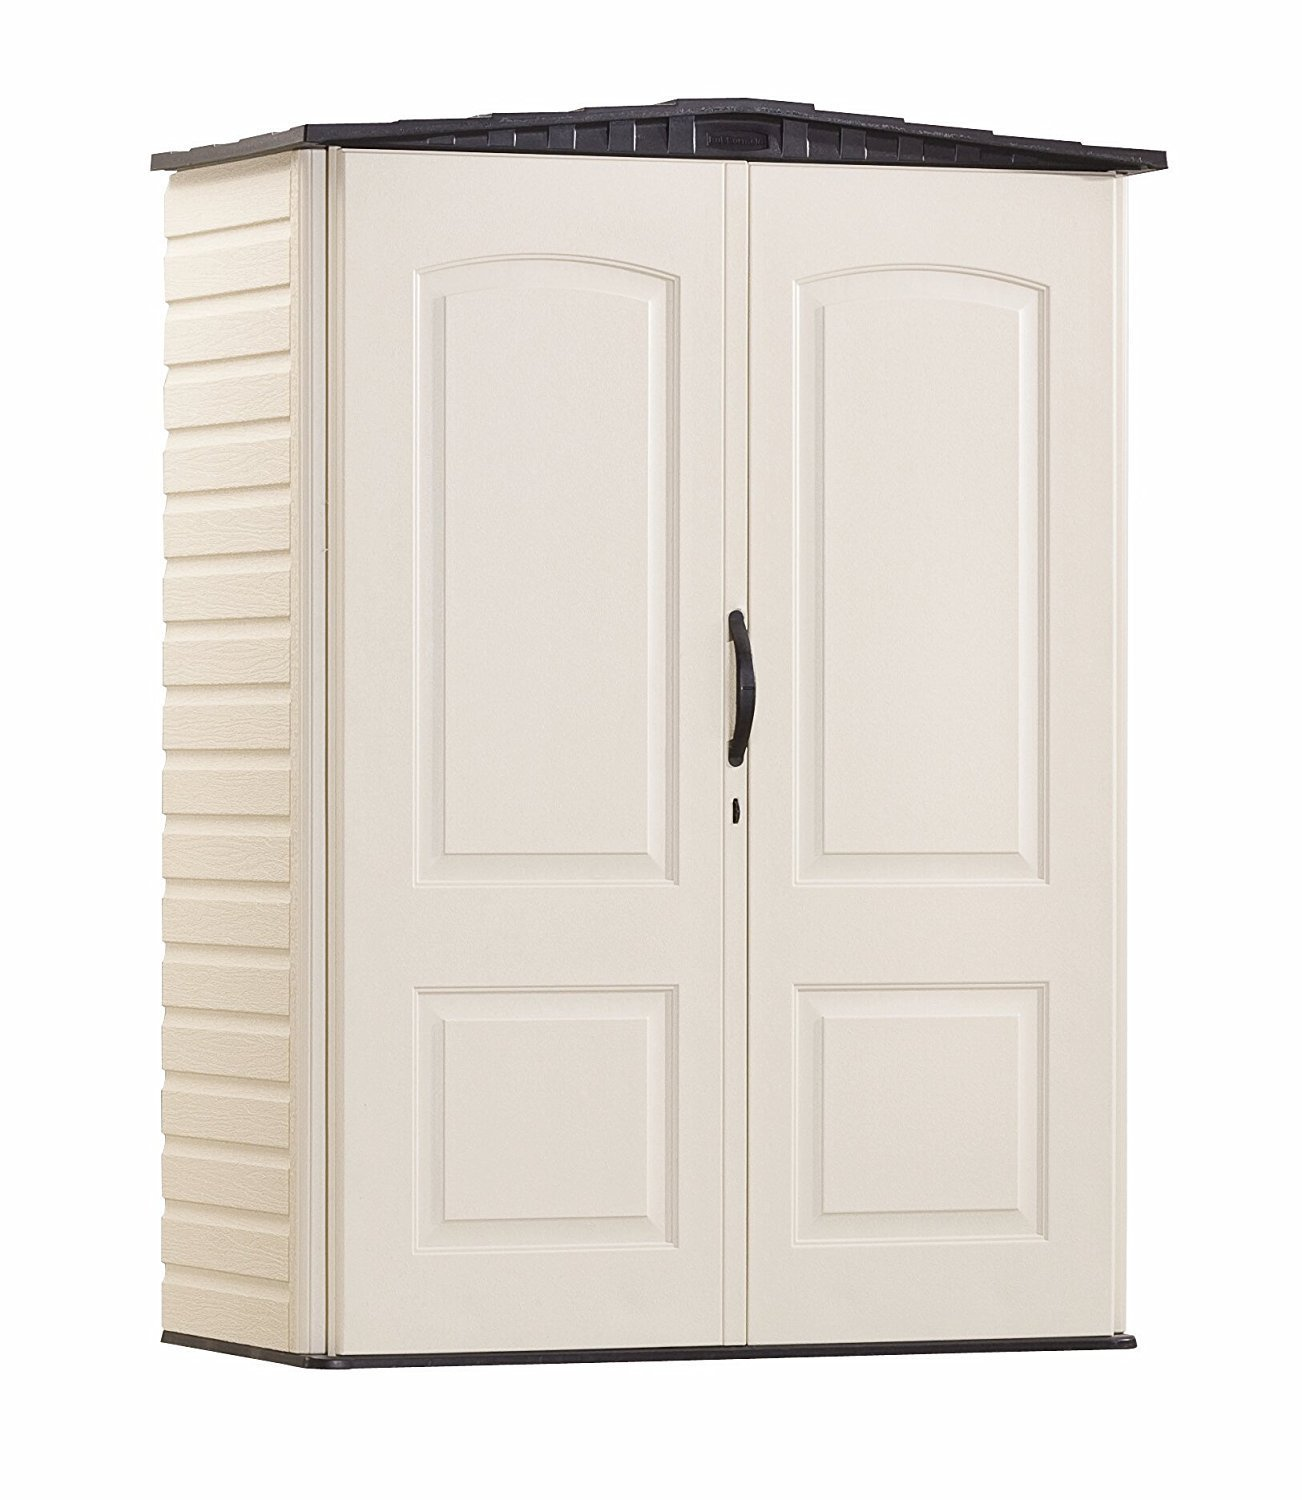 Rubbermaid Storage Shed Home Furniture Design